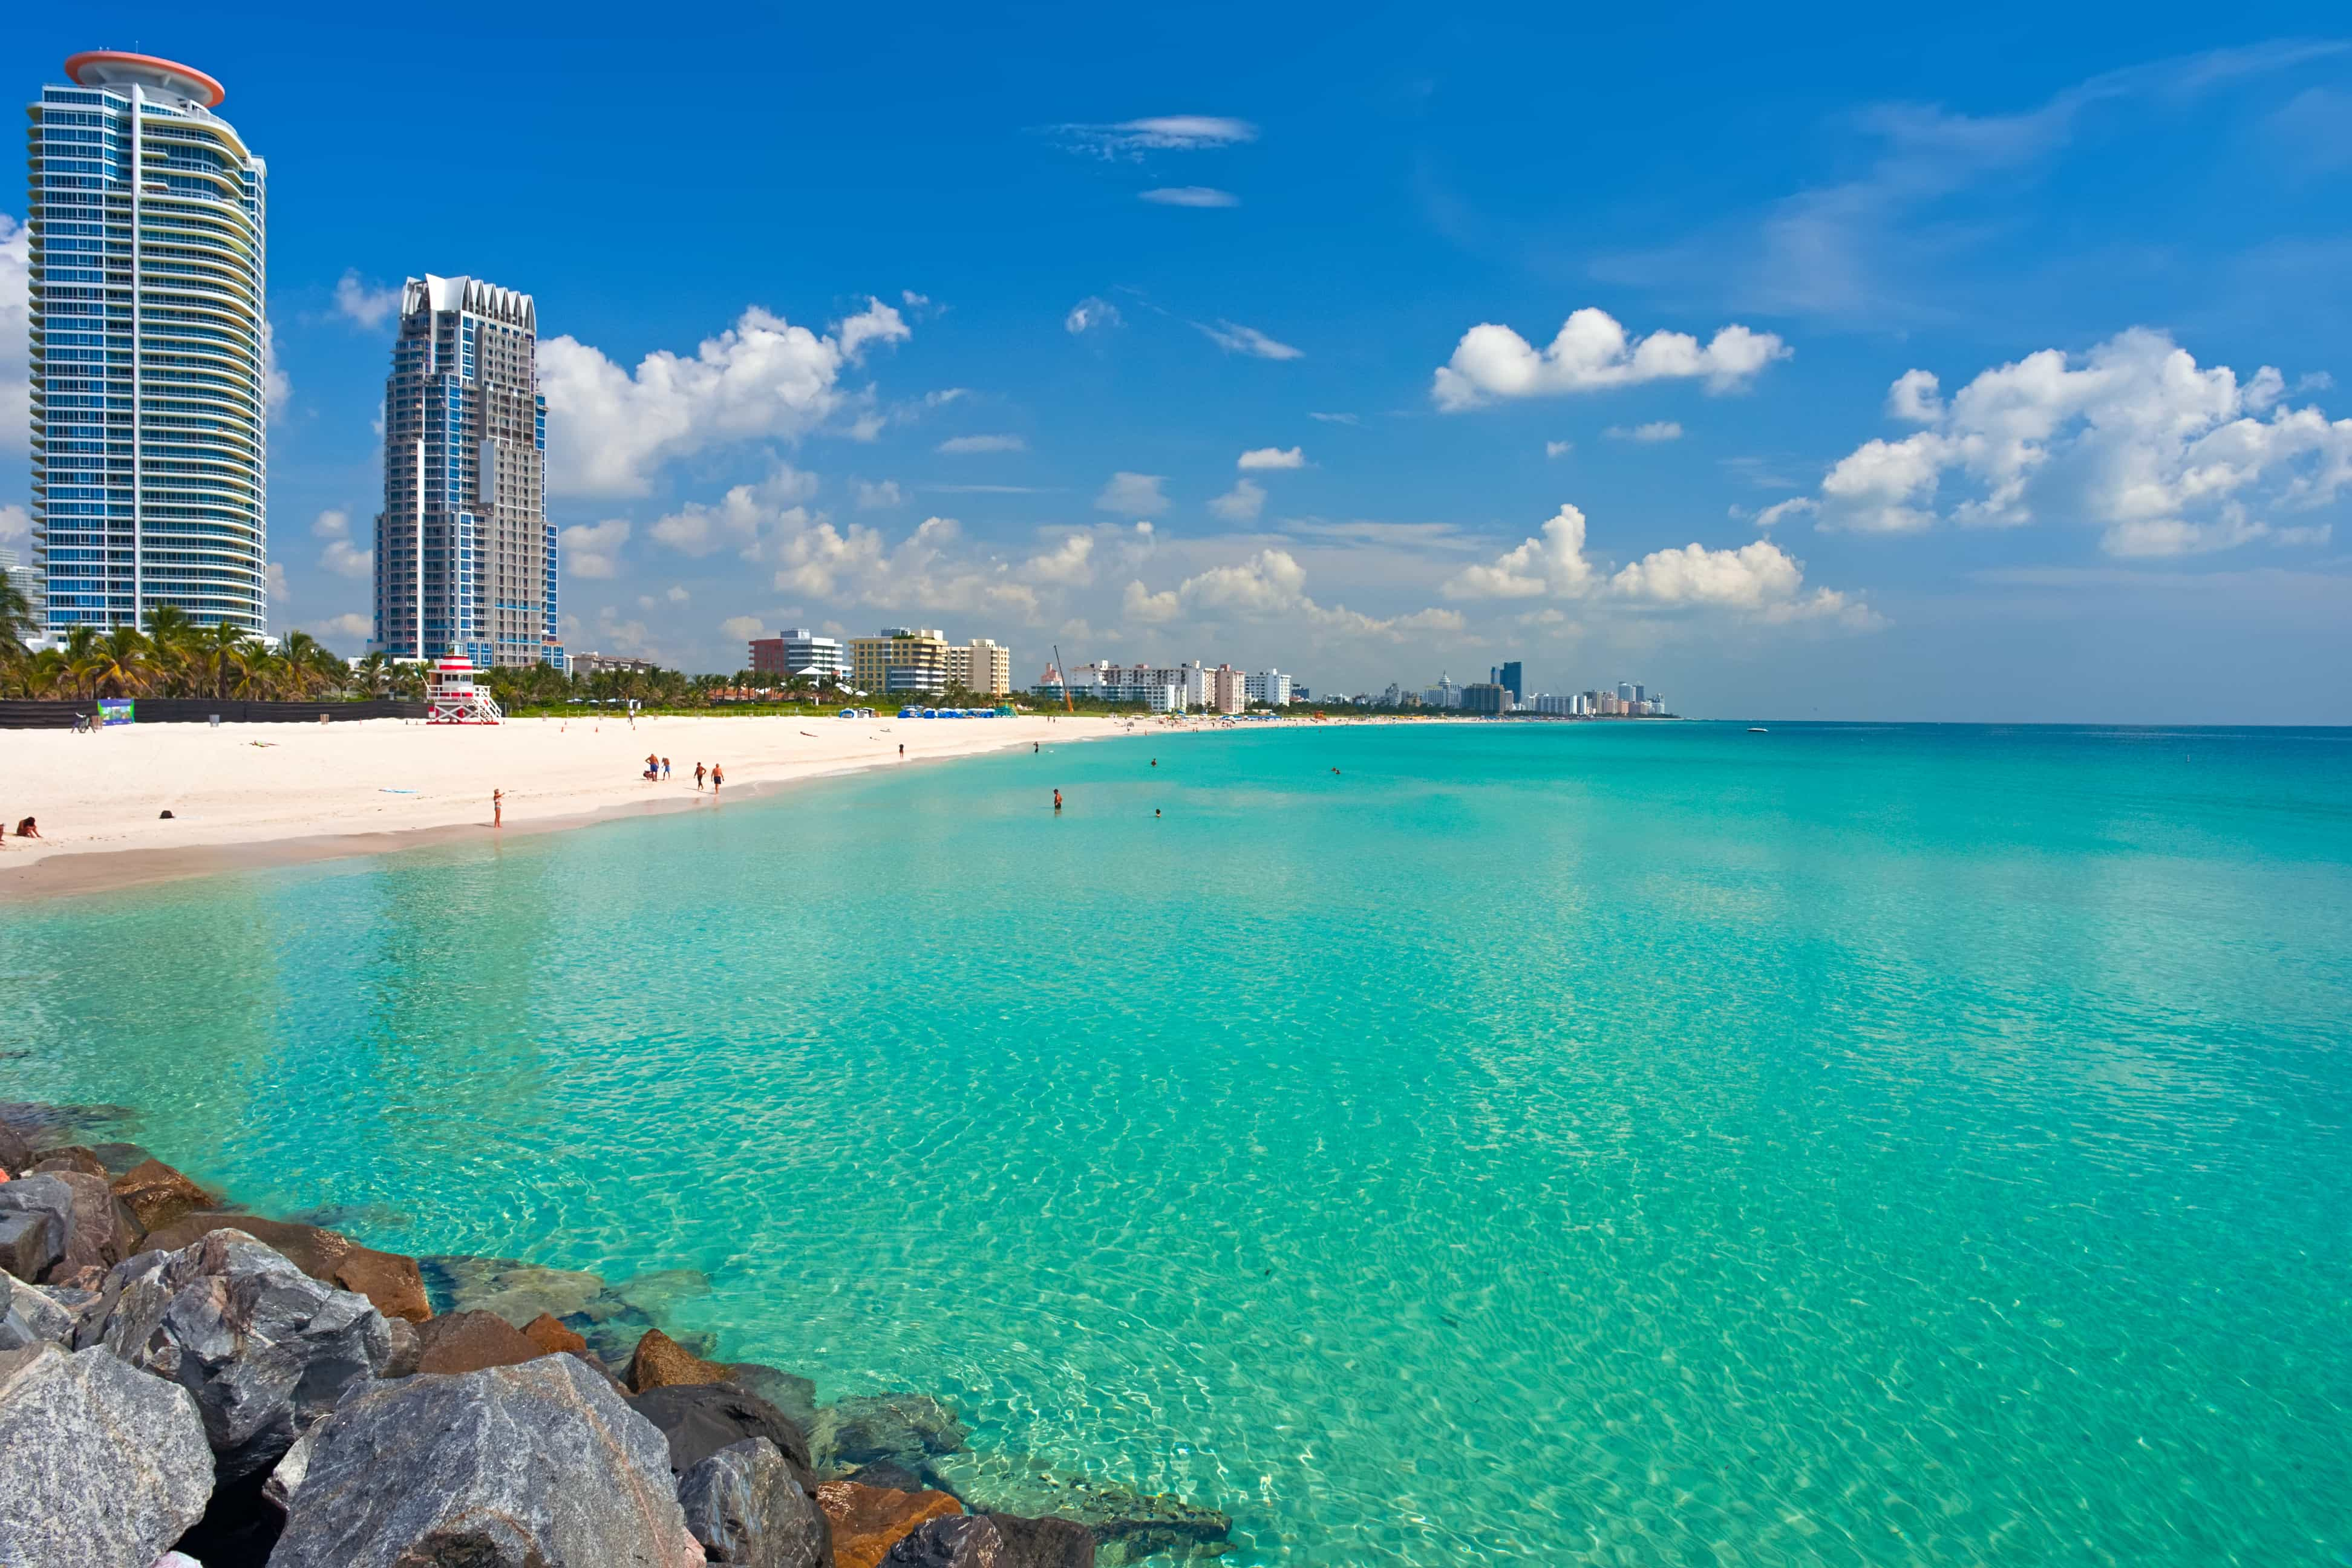 Miami beach with turquoise waters